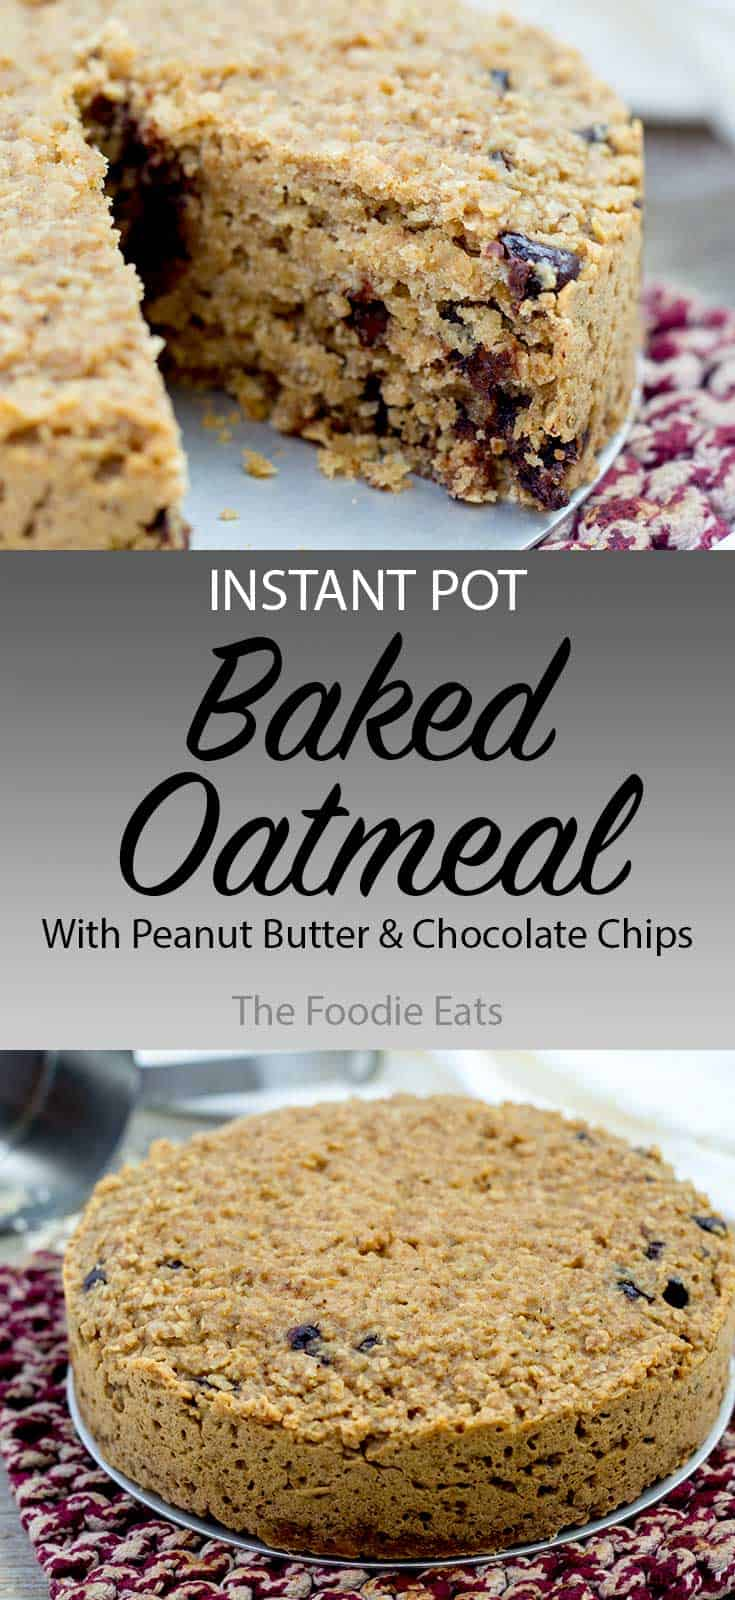 Instant Pot Baked Oatmeal | The Foodie Eats